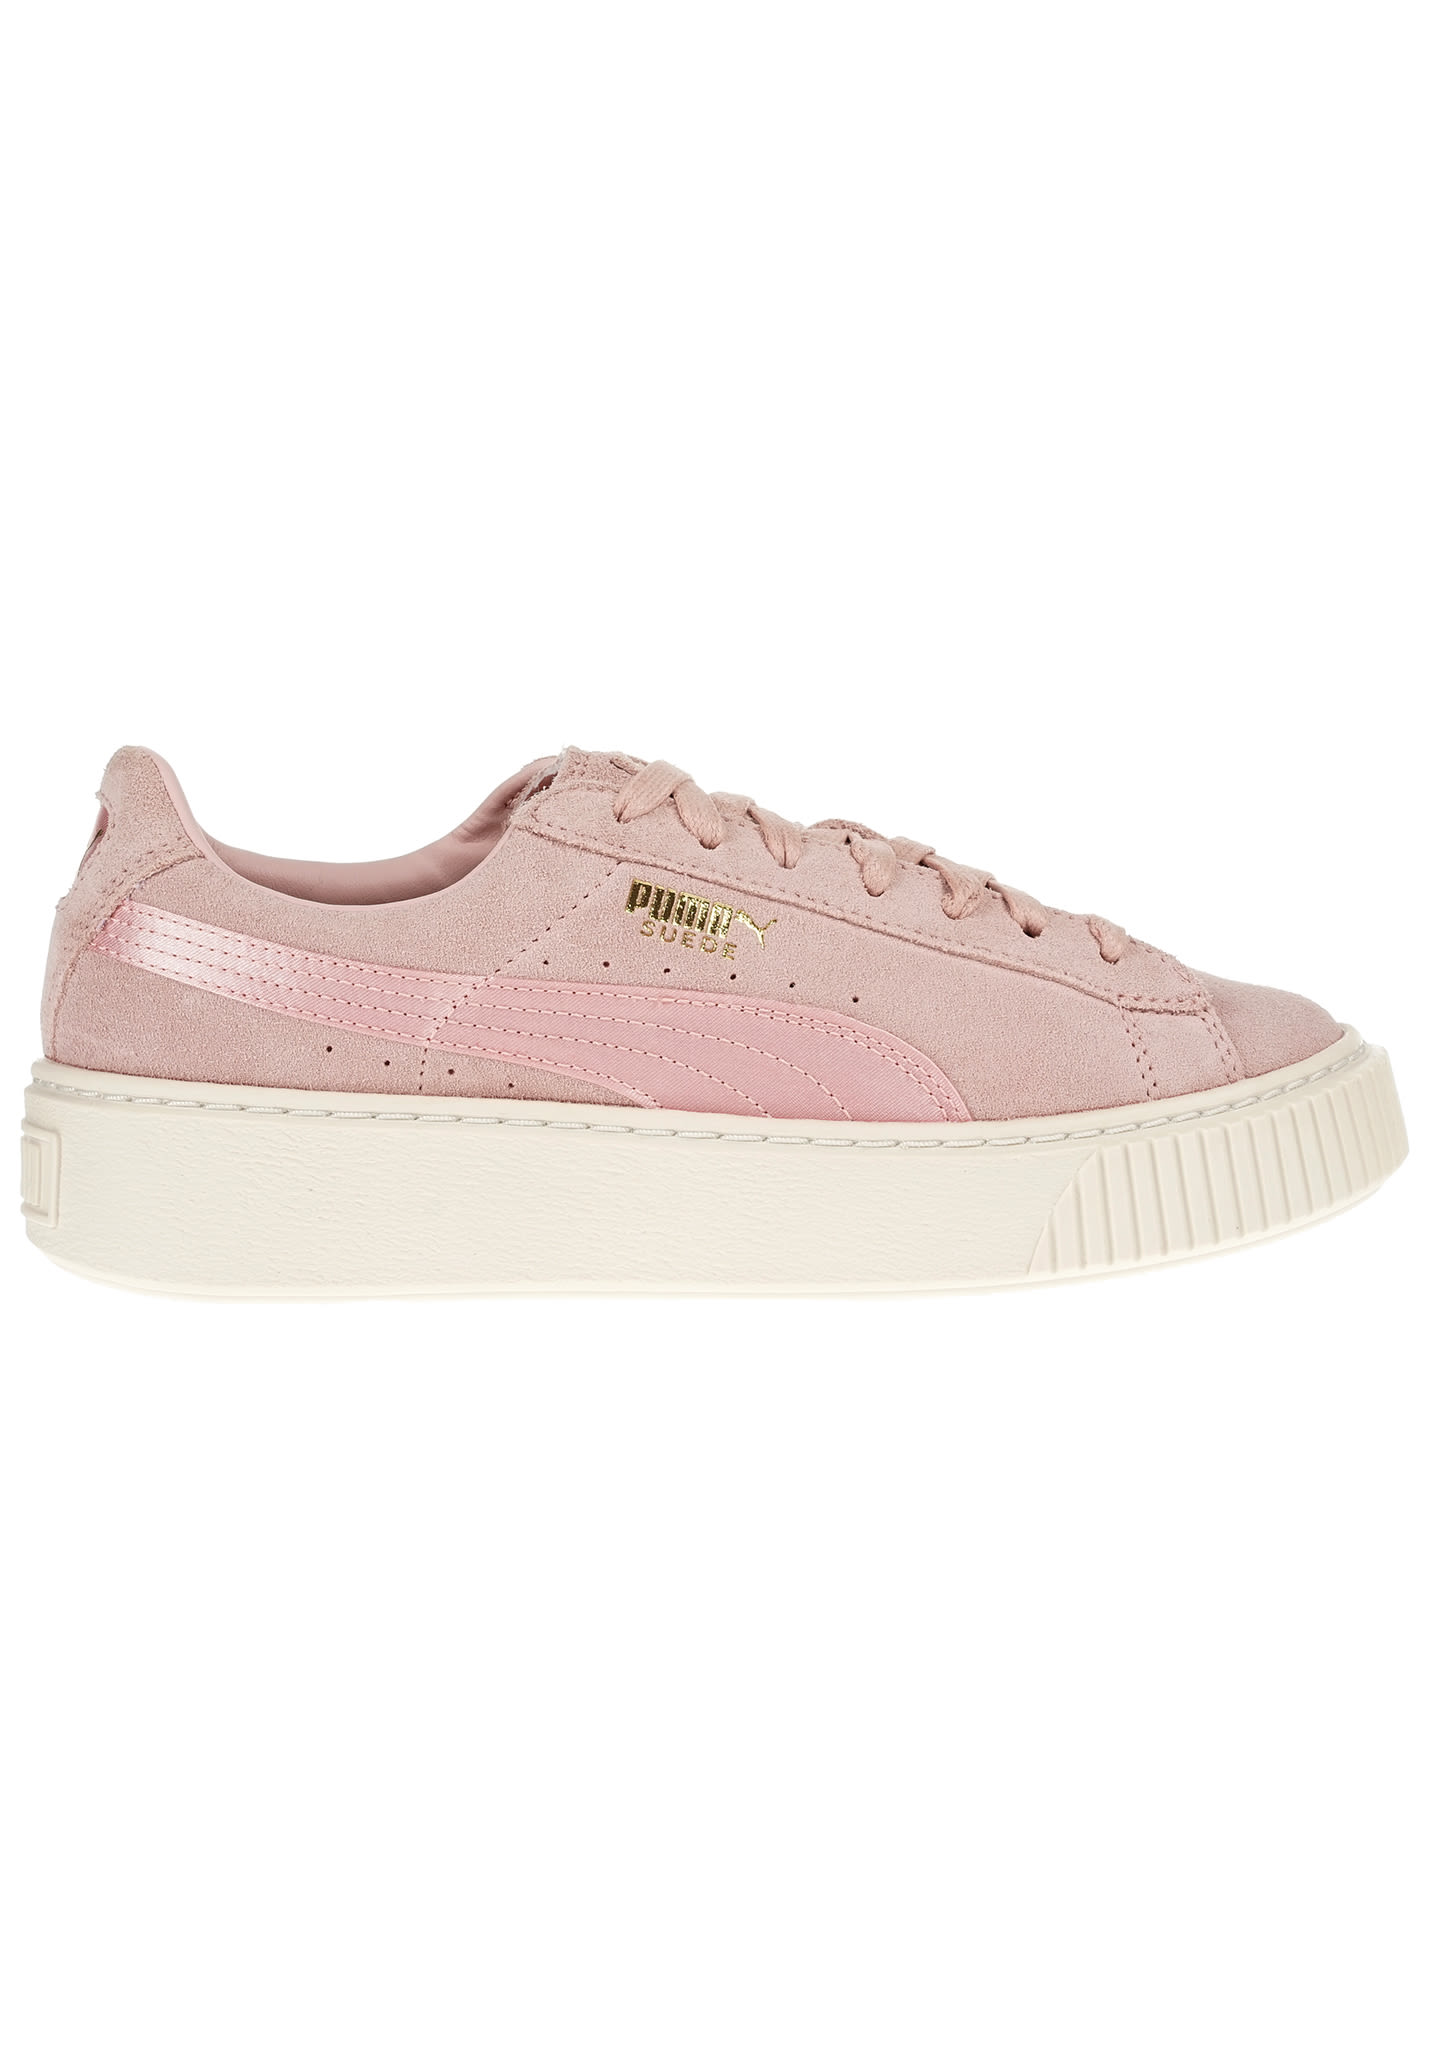 puma suede sneakers womens